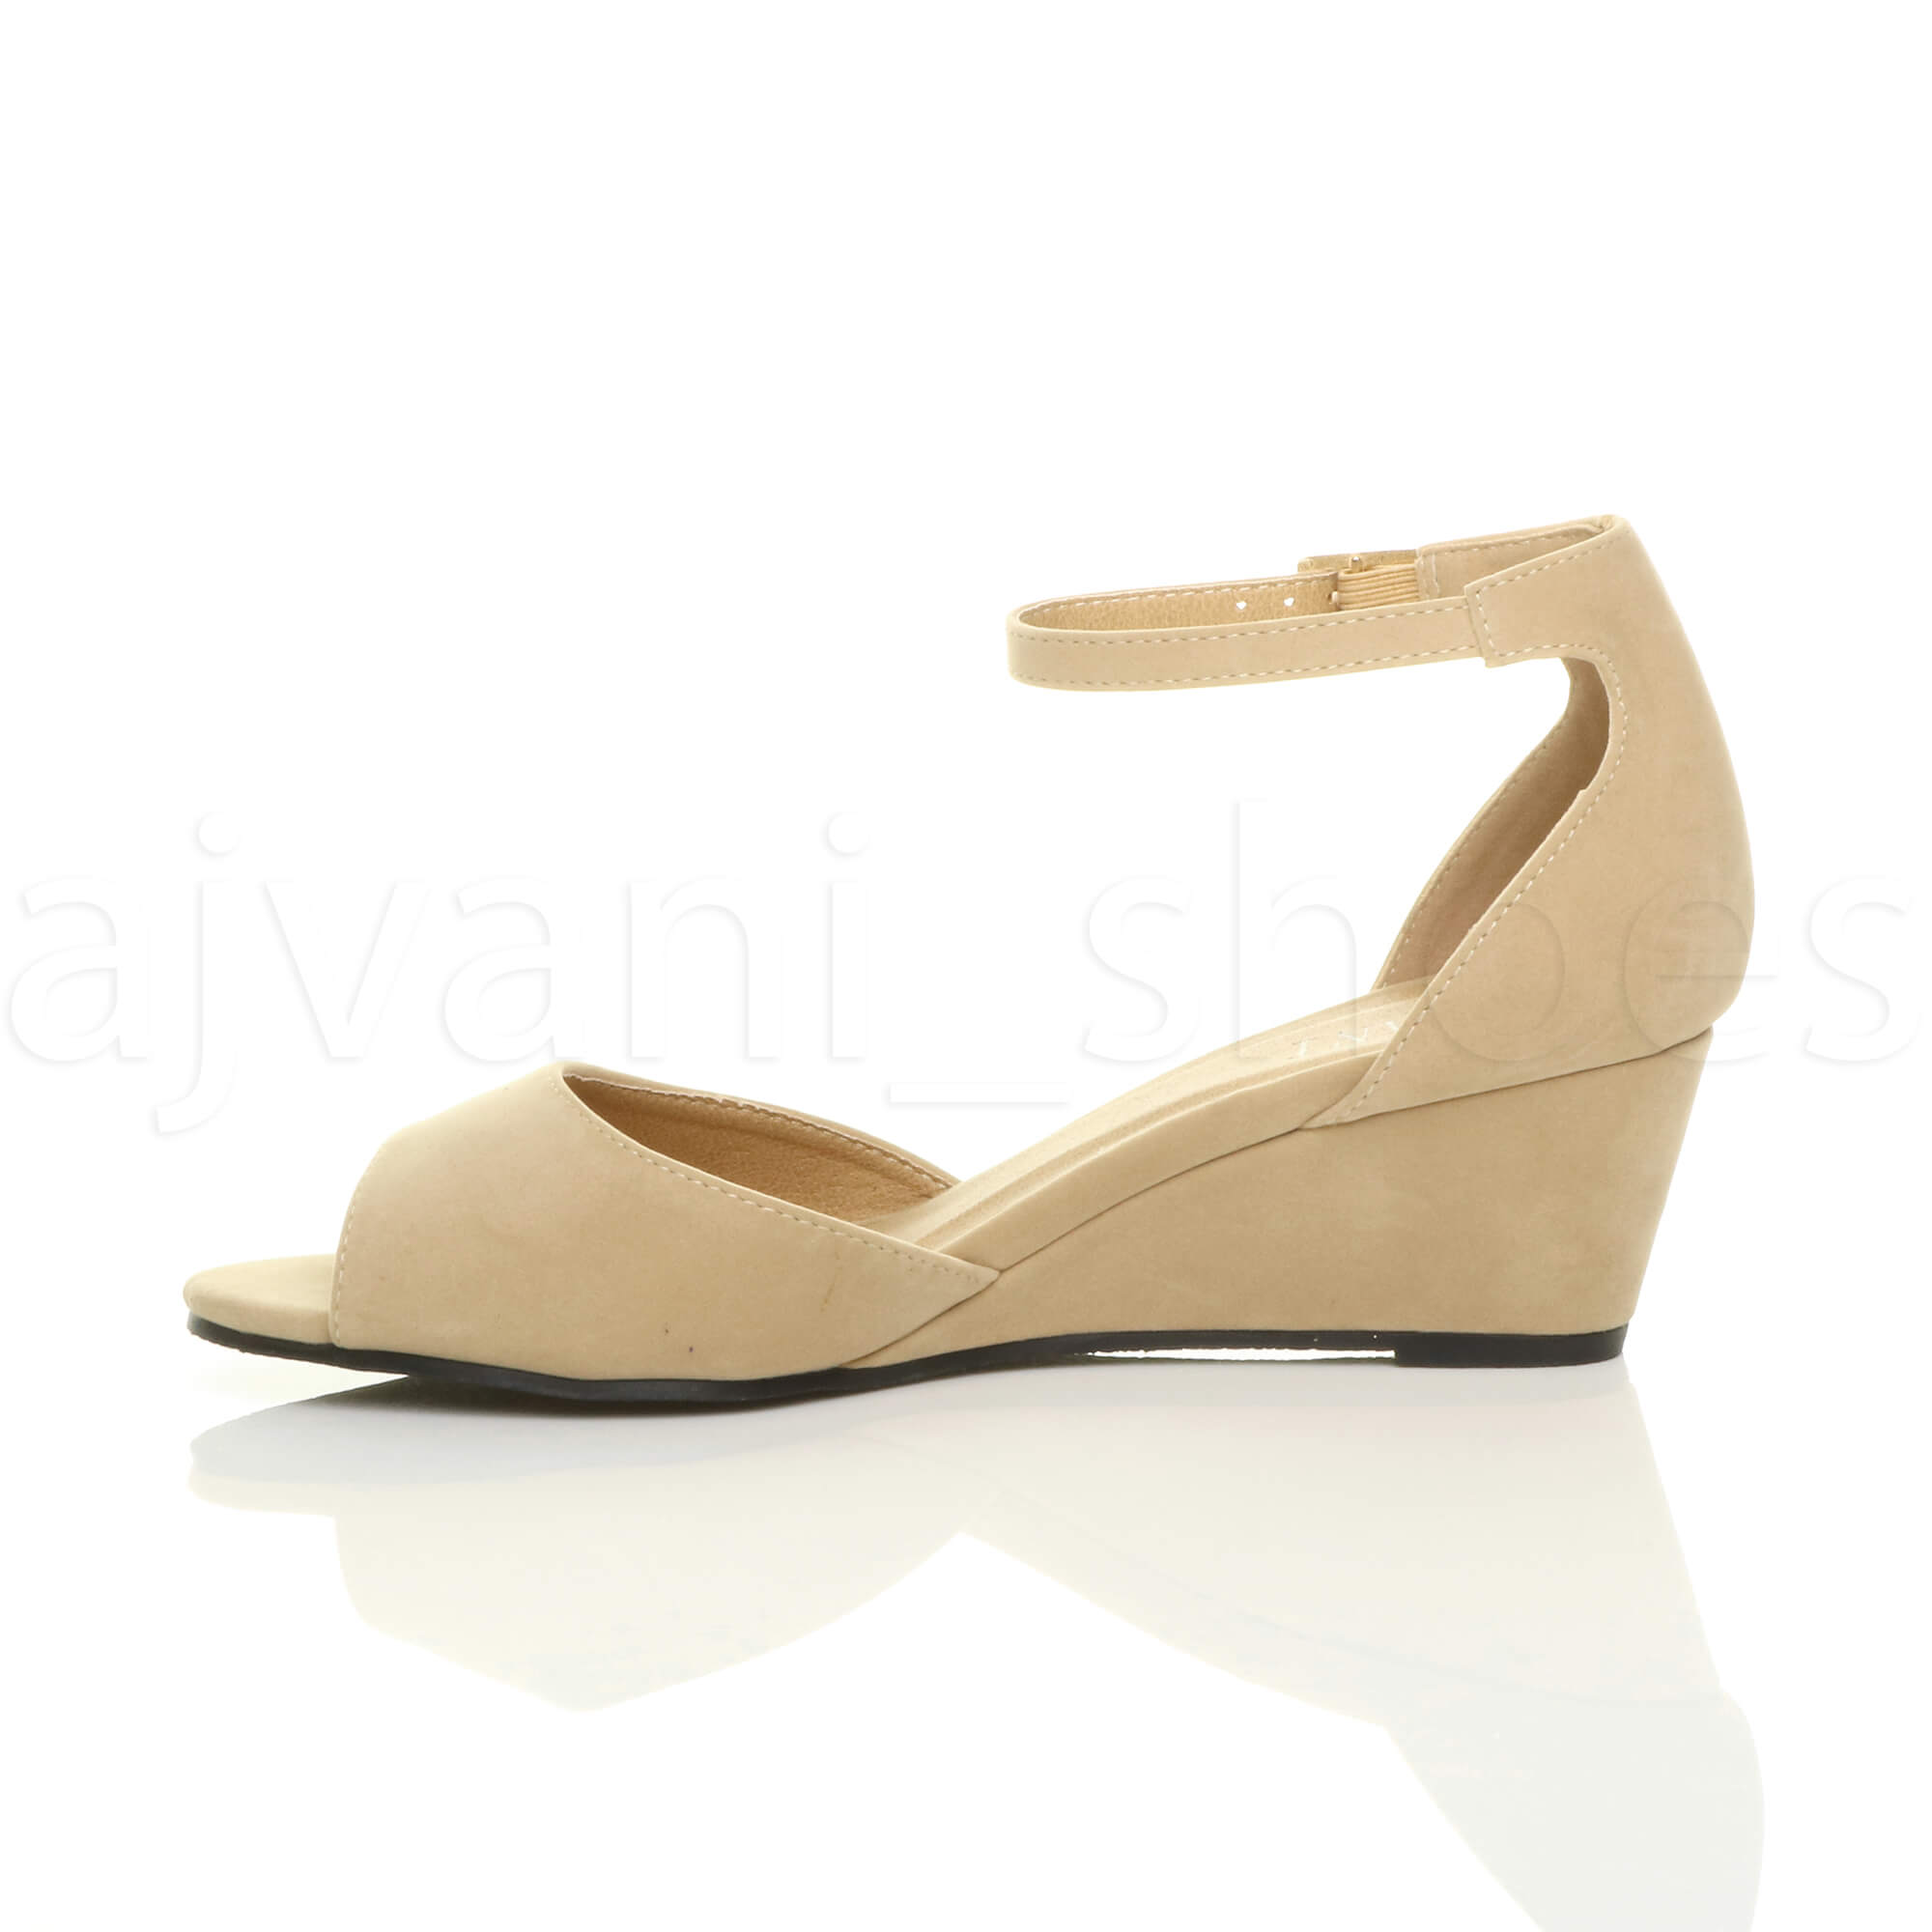 WOMENS-LADIES-LOW-MID-WEDGE-HEEL-ANKLE-STRAP-SMART-CASUAL-EVENING-SANDALS-SIZE thumbnail 108